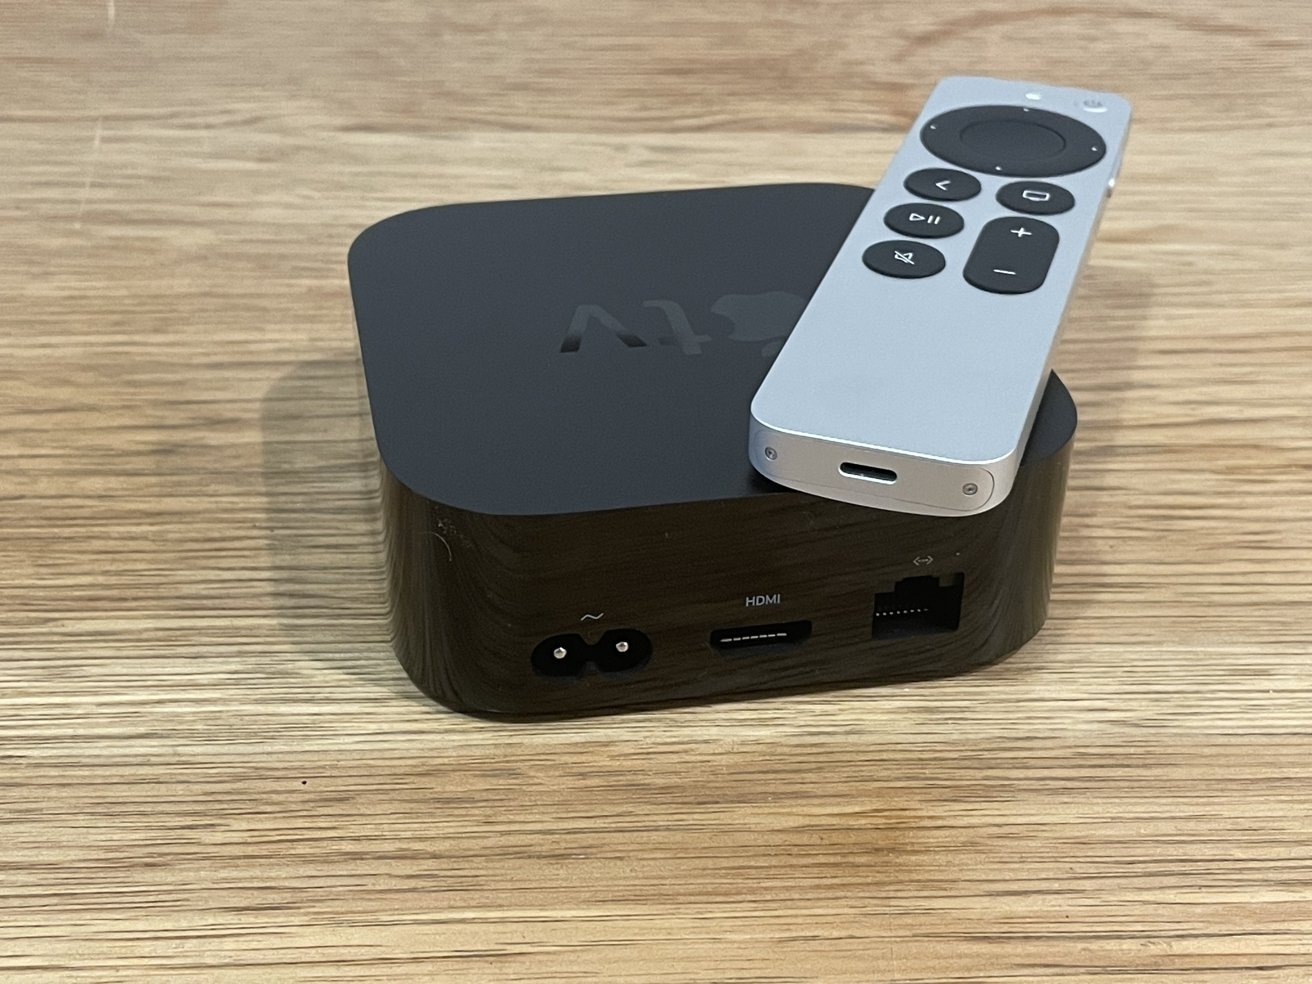 The new Apple TV 4K includes a HDMI port and an Ethernet port